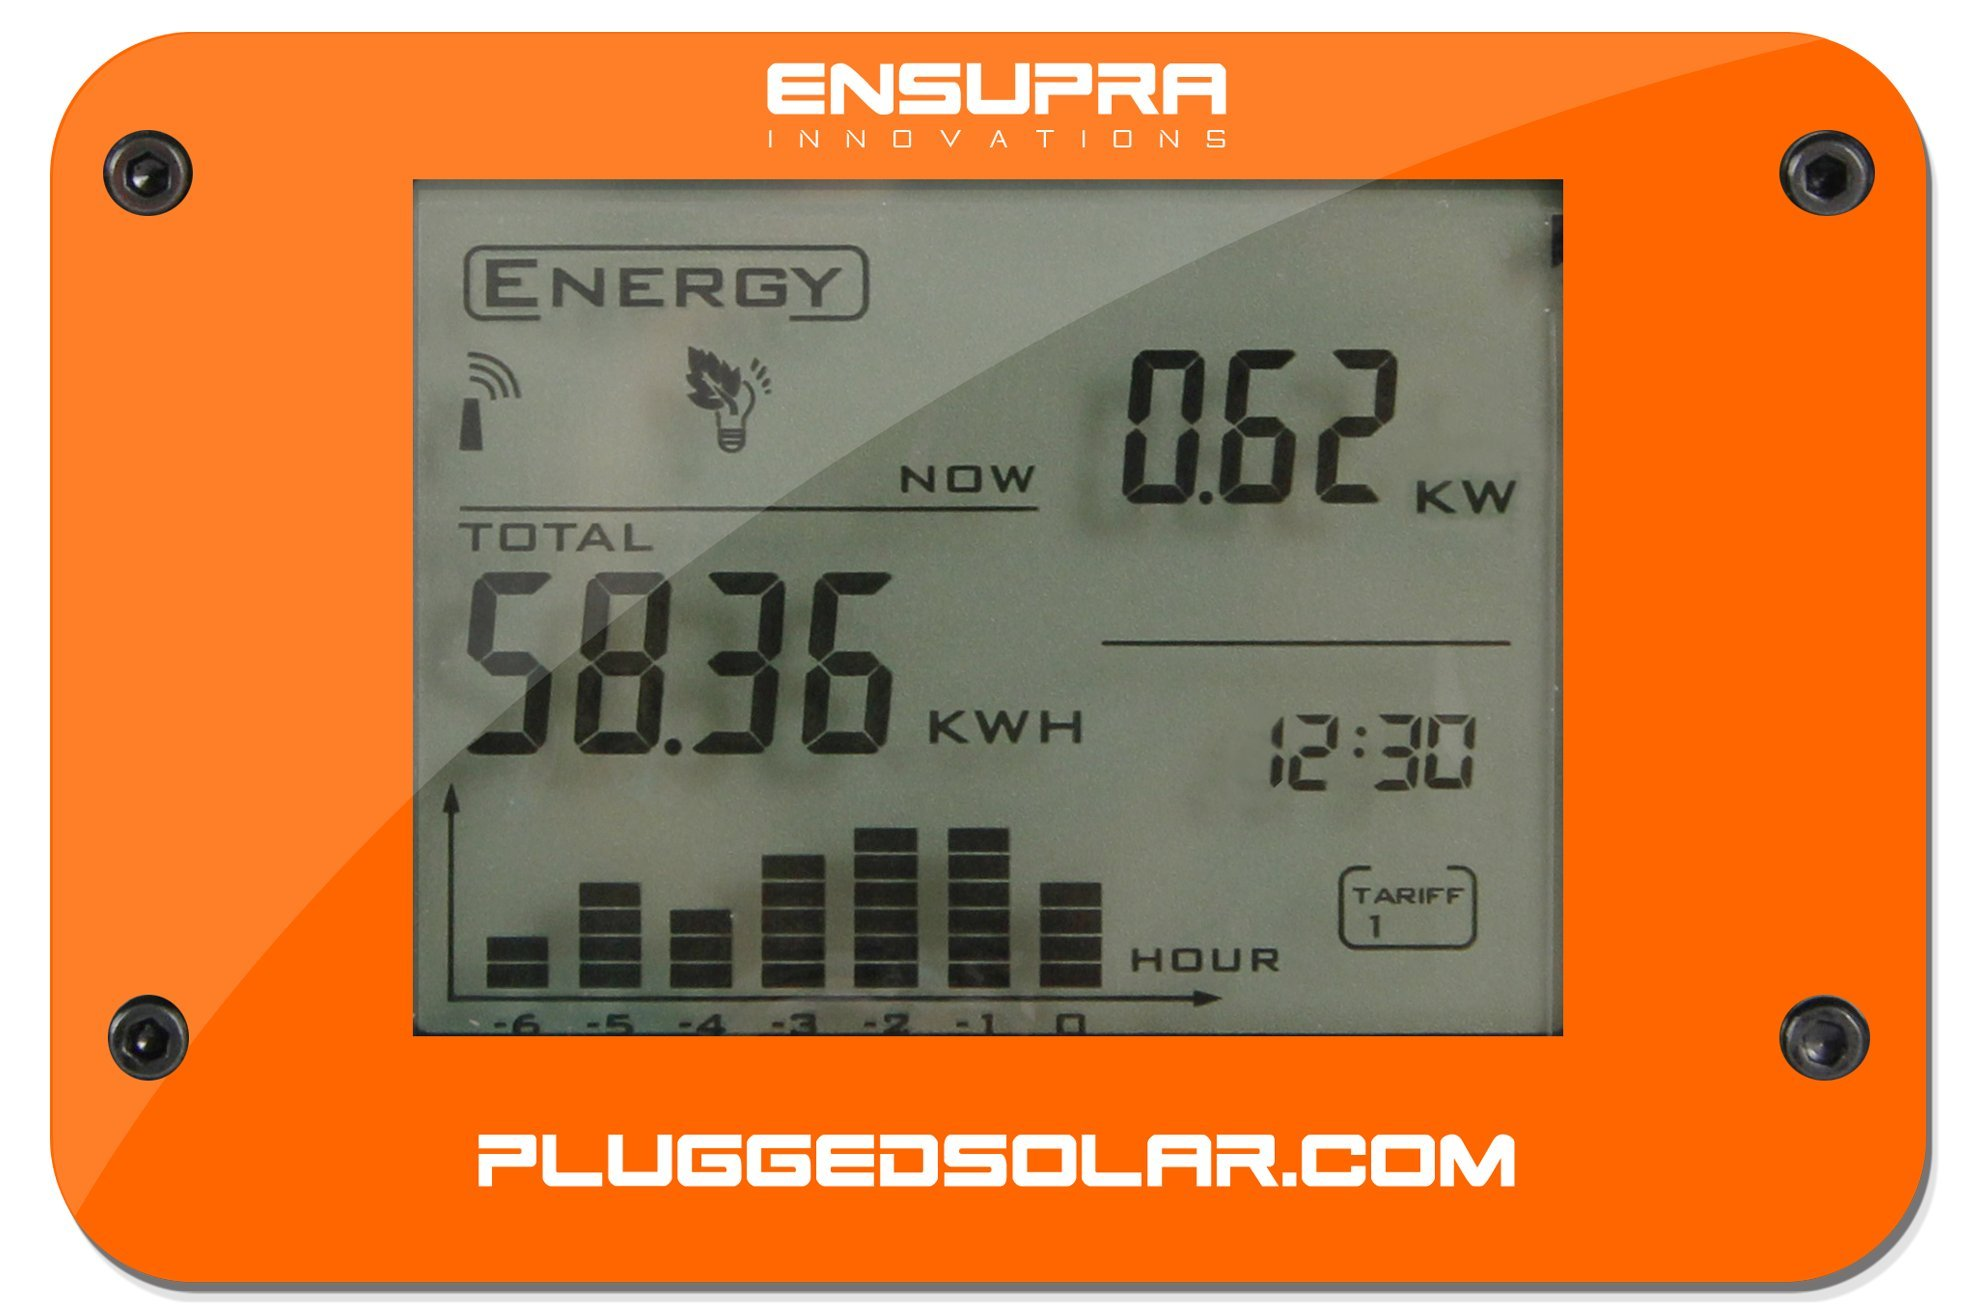 Wireless Solar Power Meter for Solar Power (AC), Monitor Displays Live KW (Kilo-Watts of AC Power Generation), Records the Solar PV Electricity Prodtion in Kwh, Shows Money Savings and Co2 Avoiaded. Used also for Monitoring Electricity Generation from Win by Plugged Solar (Image #3)